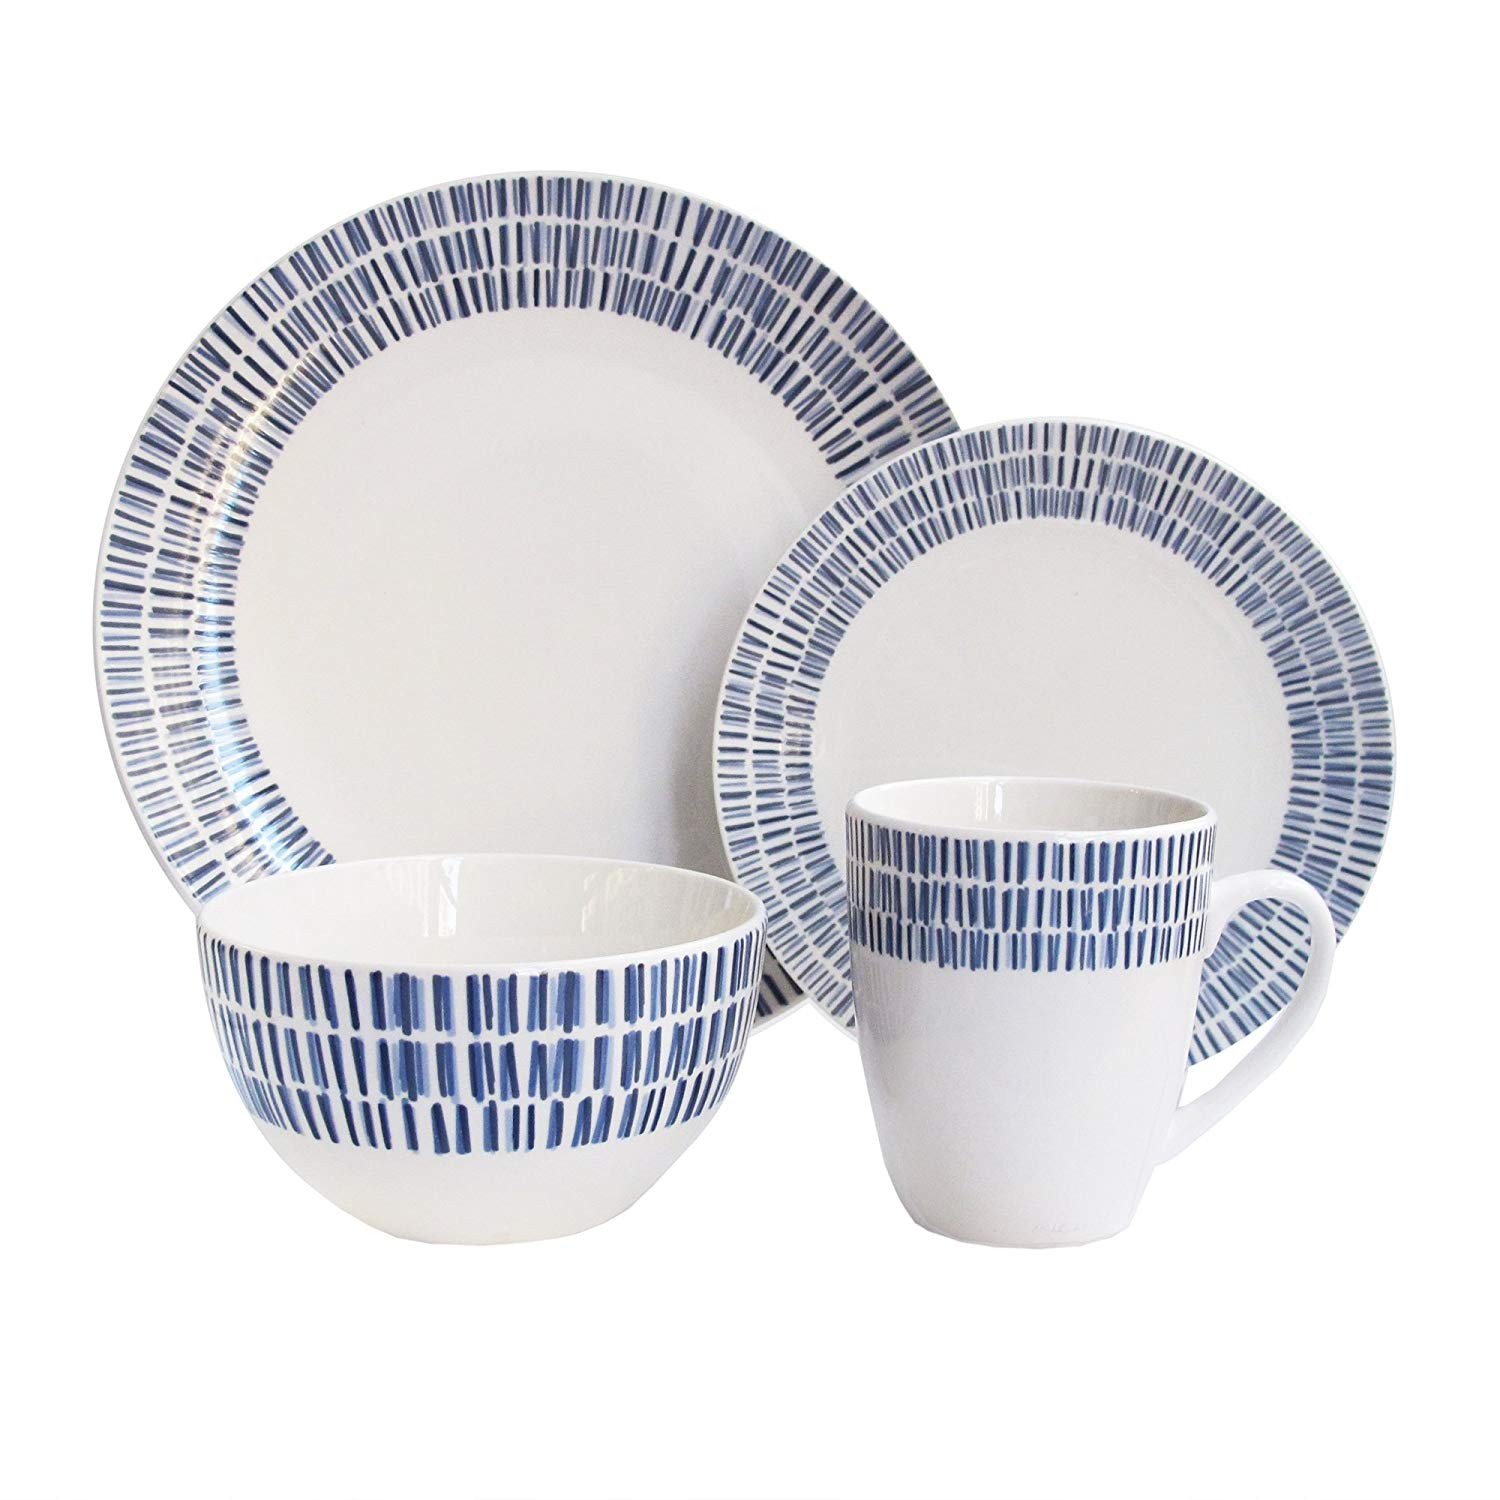 American Atelier 7084-16-RB Rhythm Dinnerware Set, 10.5 x 10.5, White/Blue